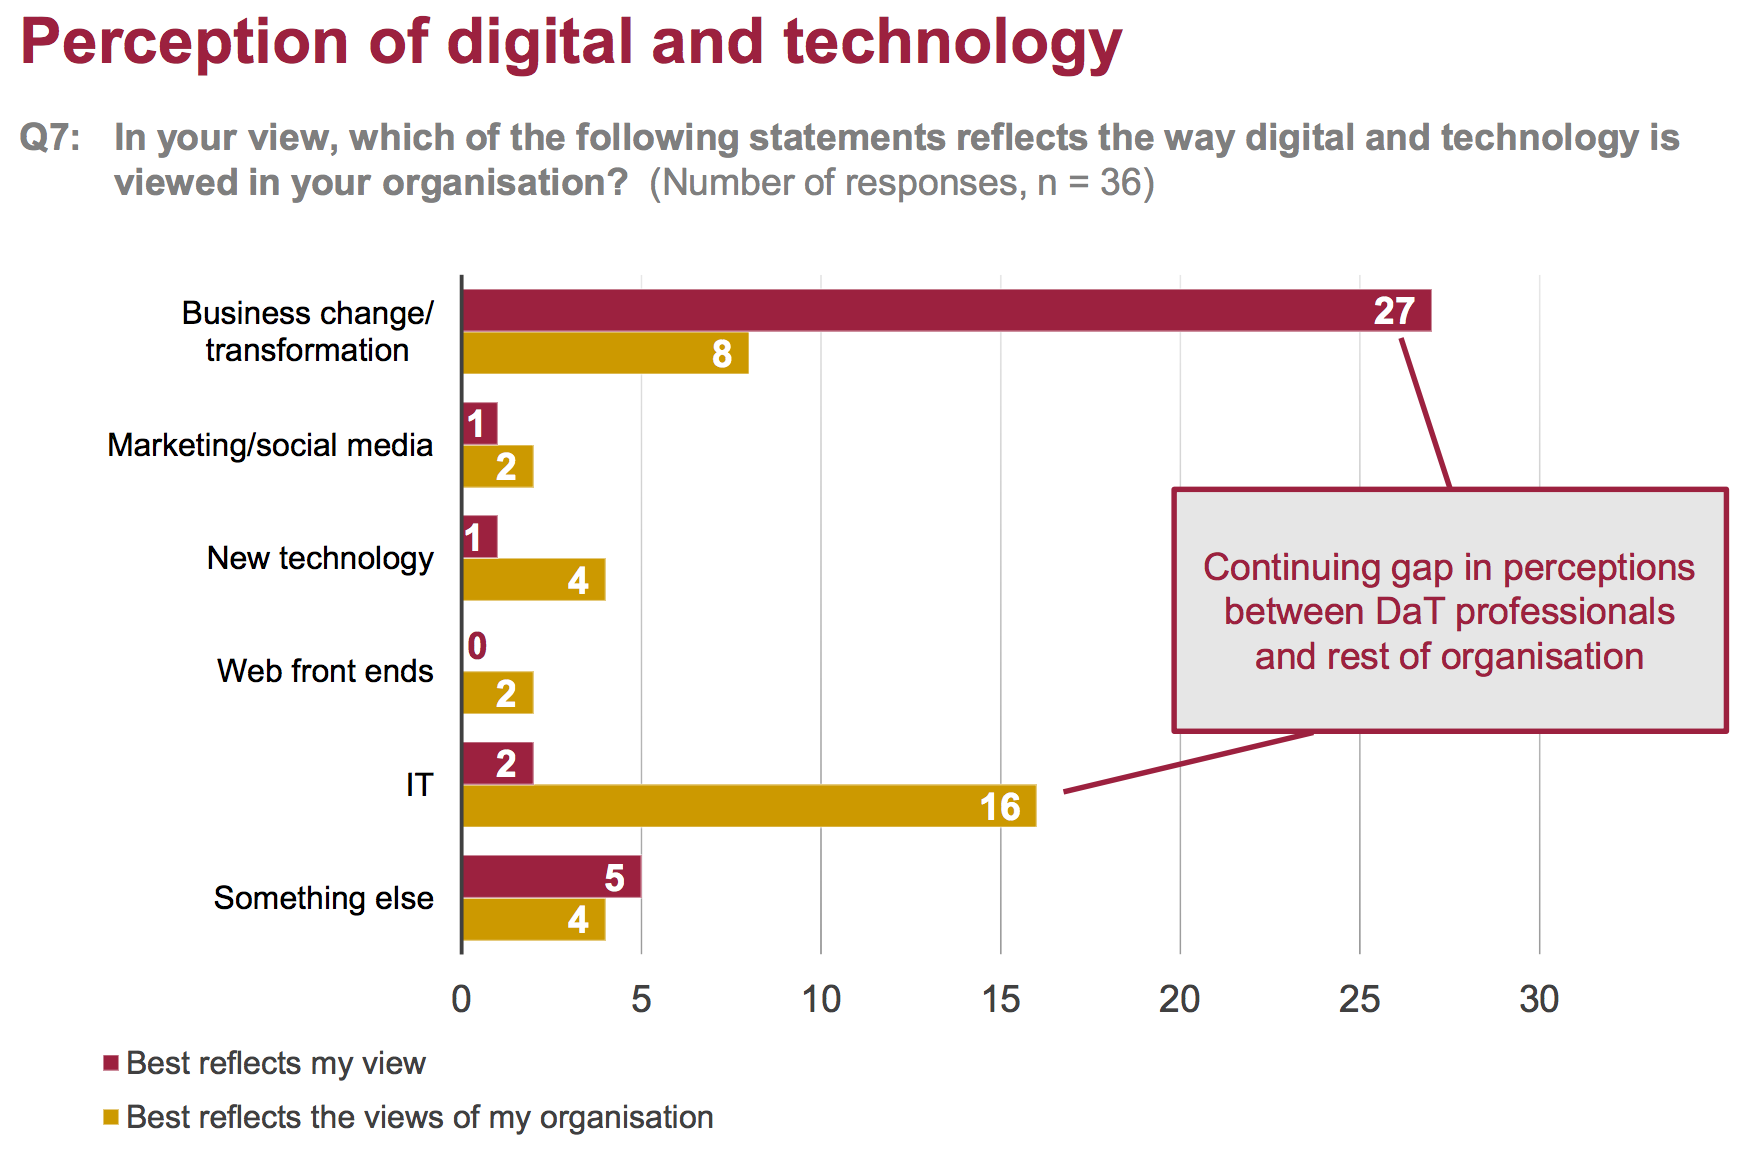 non digital staff see tech as 'IT'